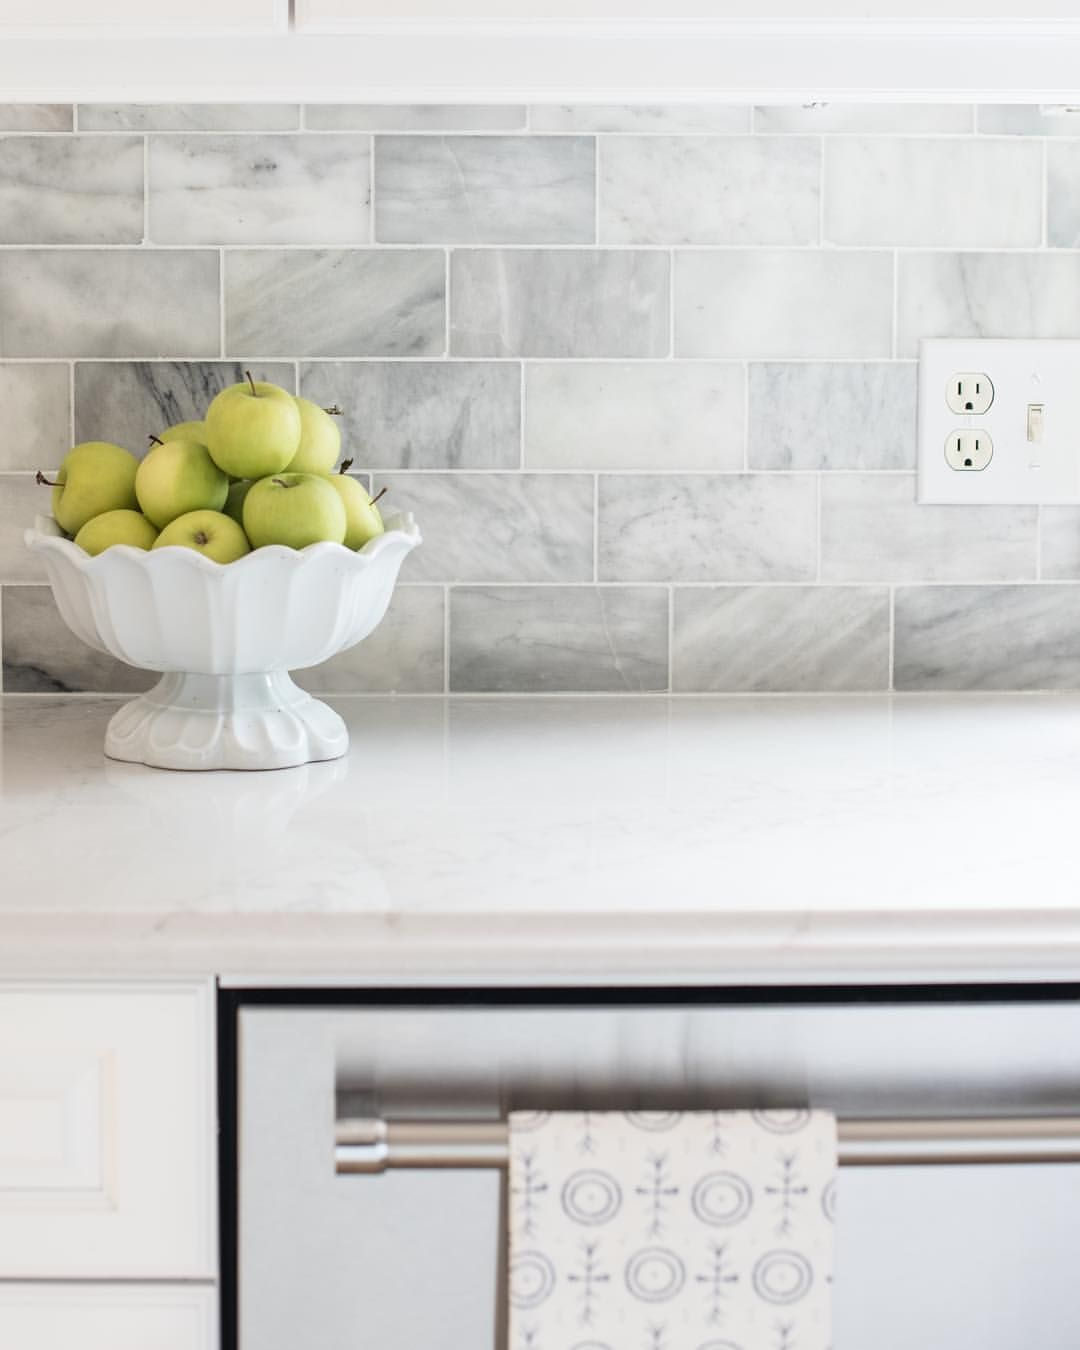 - Closer Look At The New Tile Backsplash. It's Venatino Marble